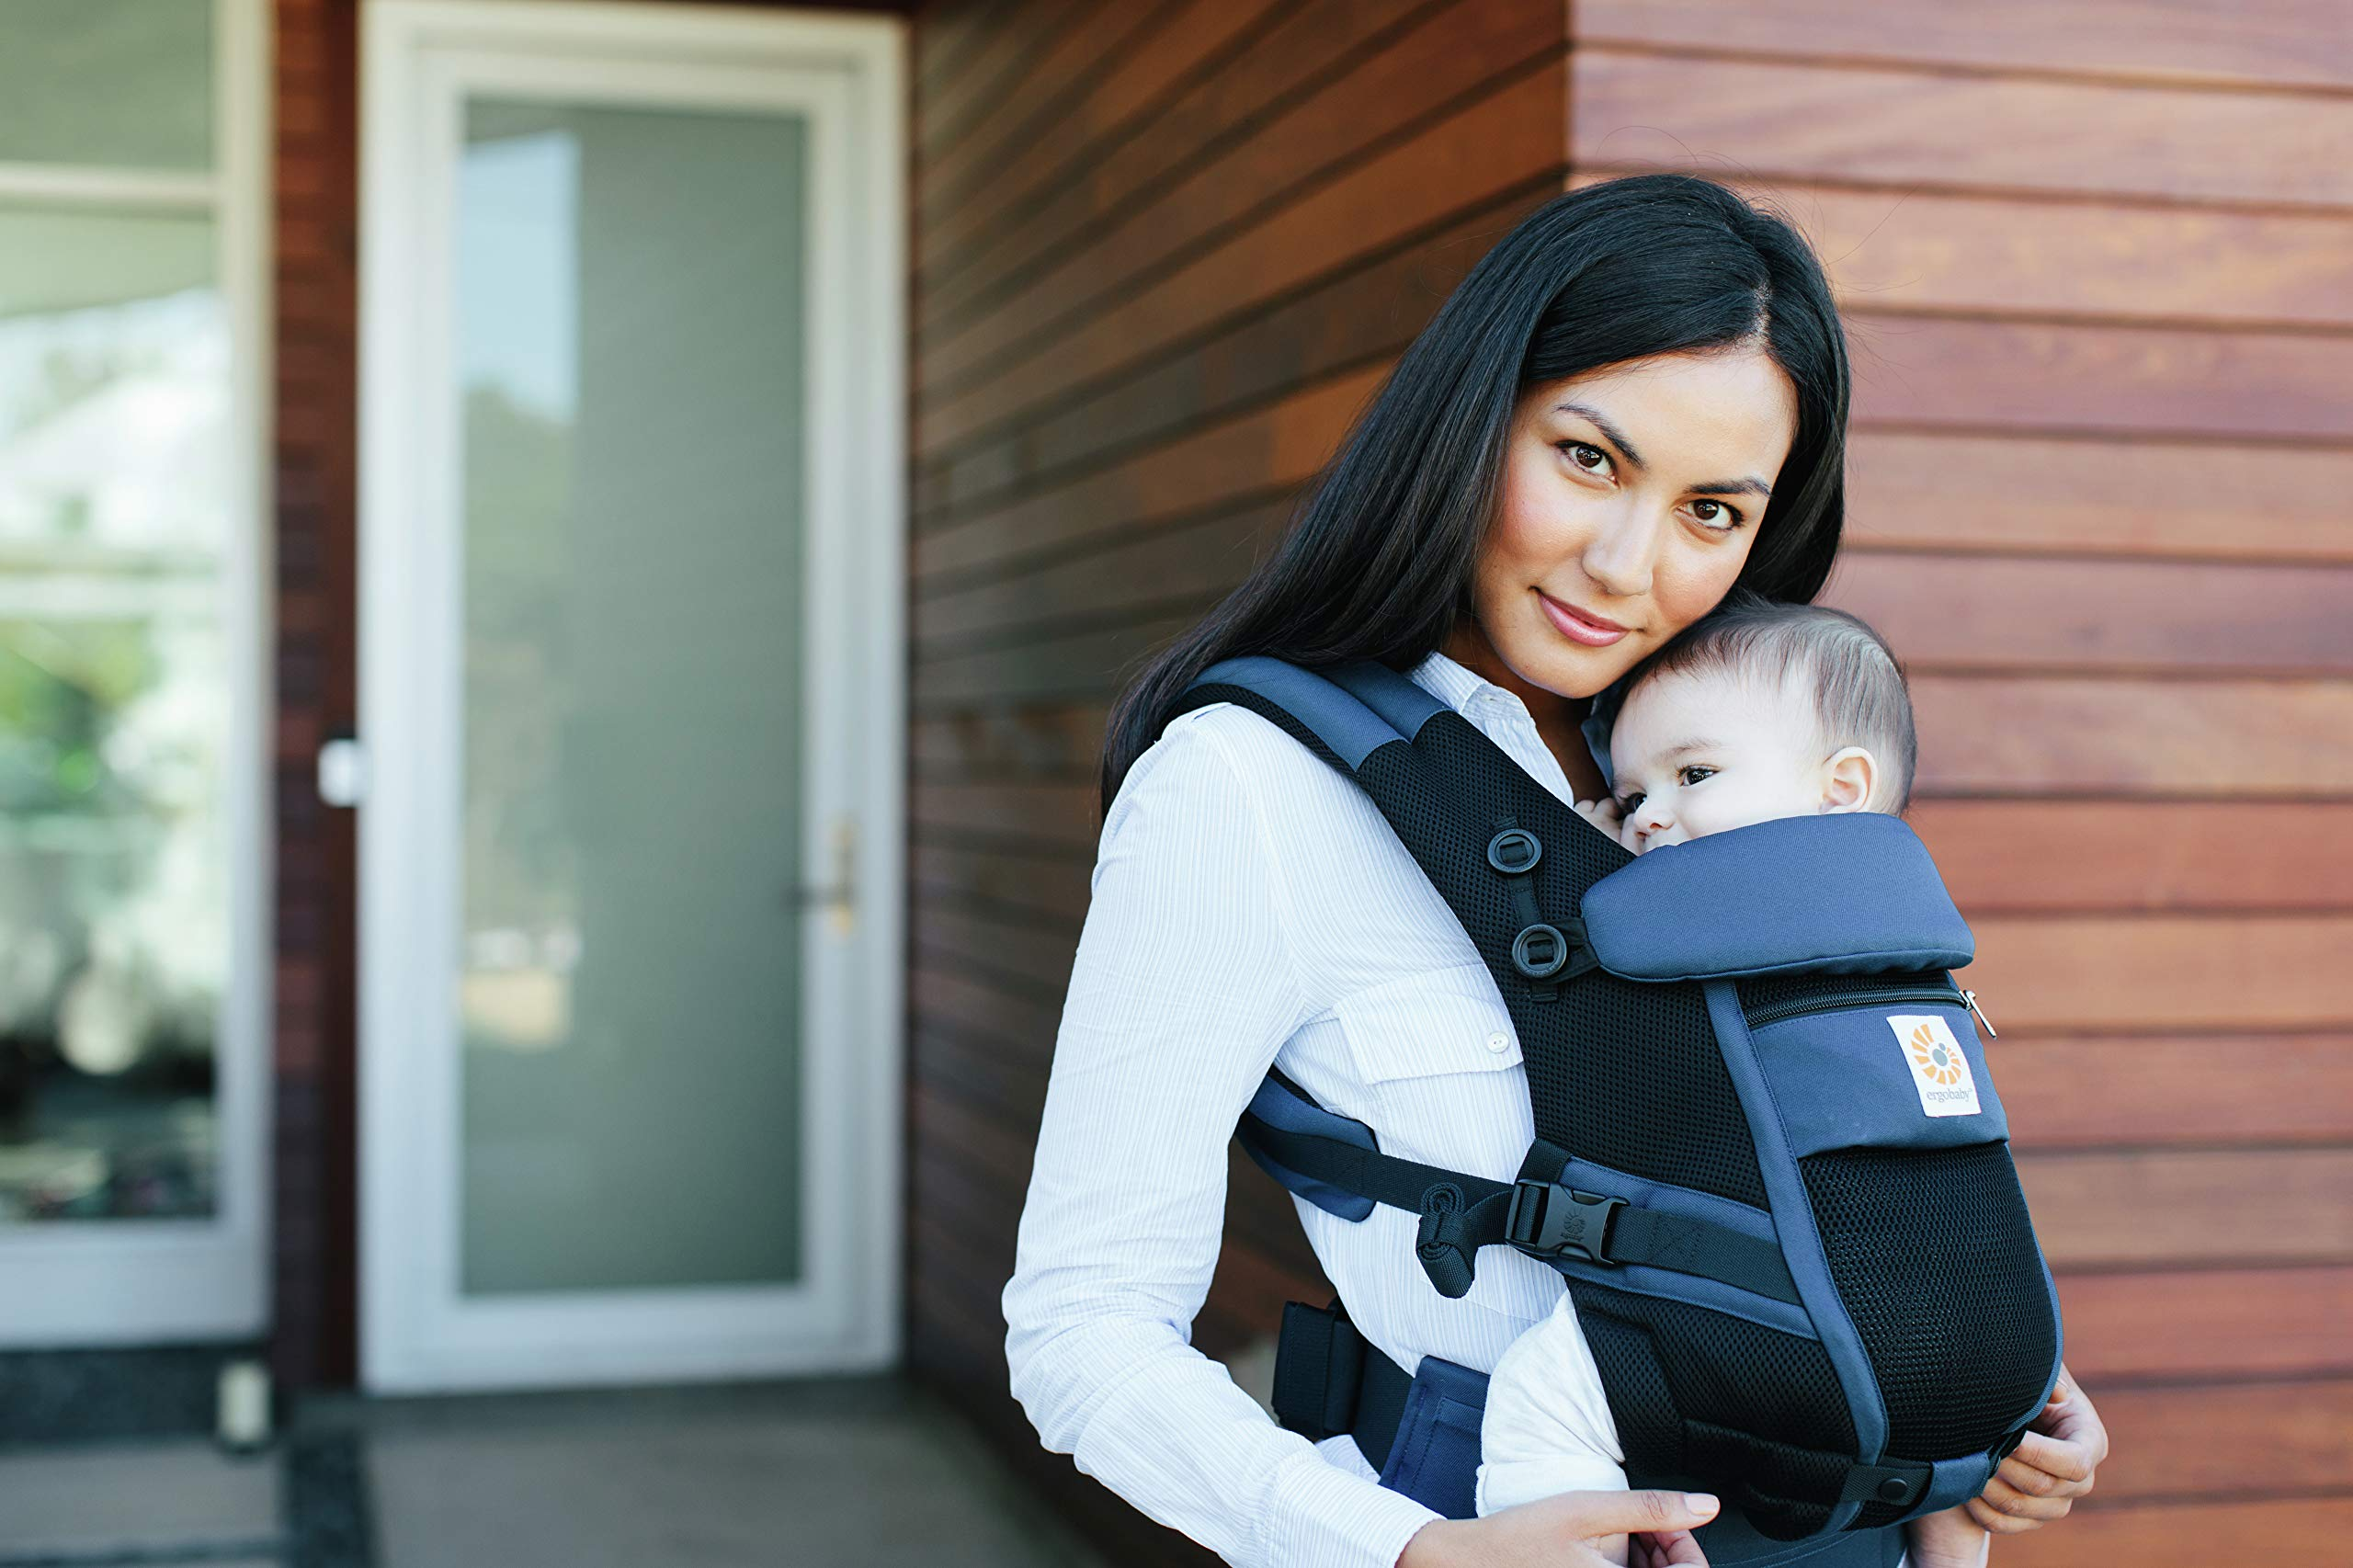 Ergobaby Baby Carrier for Newborn to Toddler, Raven Ergobaby Baby carrier for new-borns - the ergonomic bucket seat gradually adjusts to your growing baby, to ensure baby is seated in a natural frog-leg position (m-shape position) New - now with lumbar support. long-wearing comfort for parents with even weight distribution between hips and shoulders. Adapt 3 carry positions: front-inward, hip and back. the carrier has a padded, foldable head and neck support and a tuck-away baby hood for sun protection (upf 50+) and privacy. 5